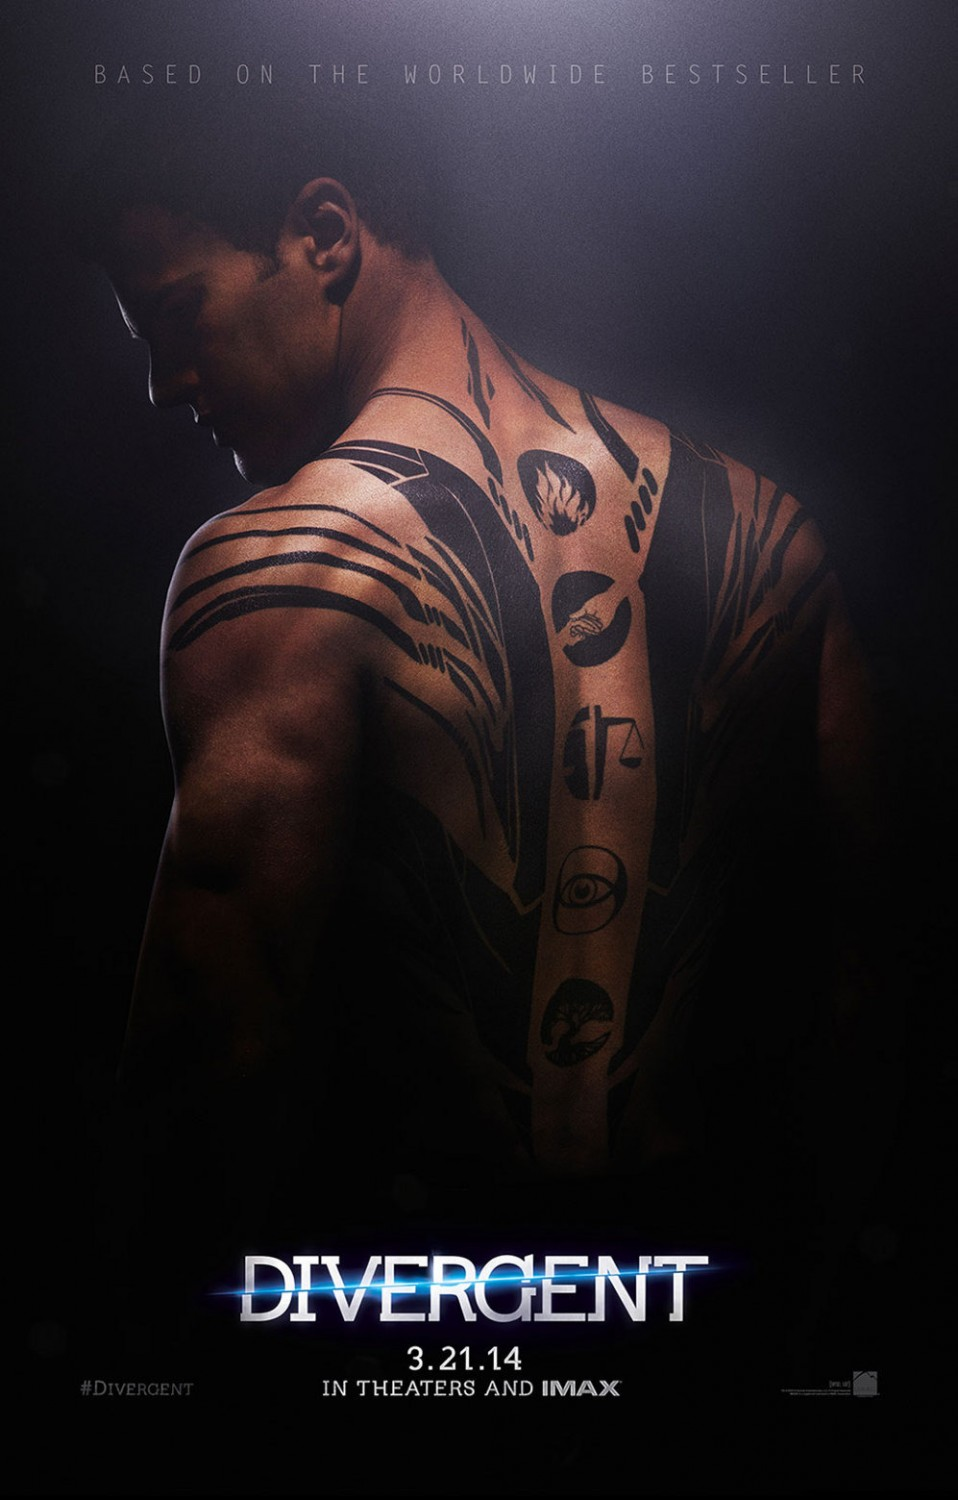 Divergent-Official Poster Banner PROMO CHAR XLG-11NOVEMBRO2013-02